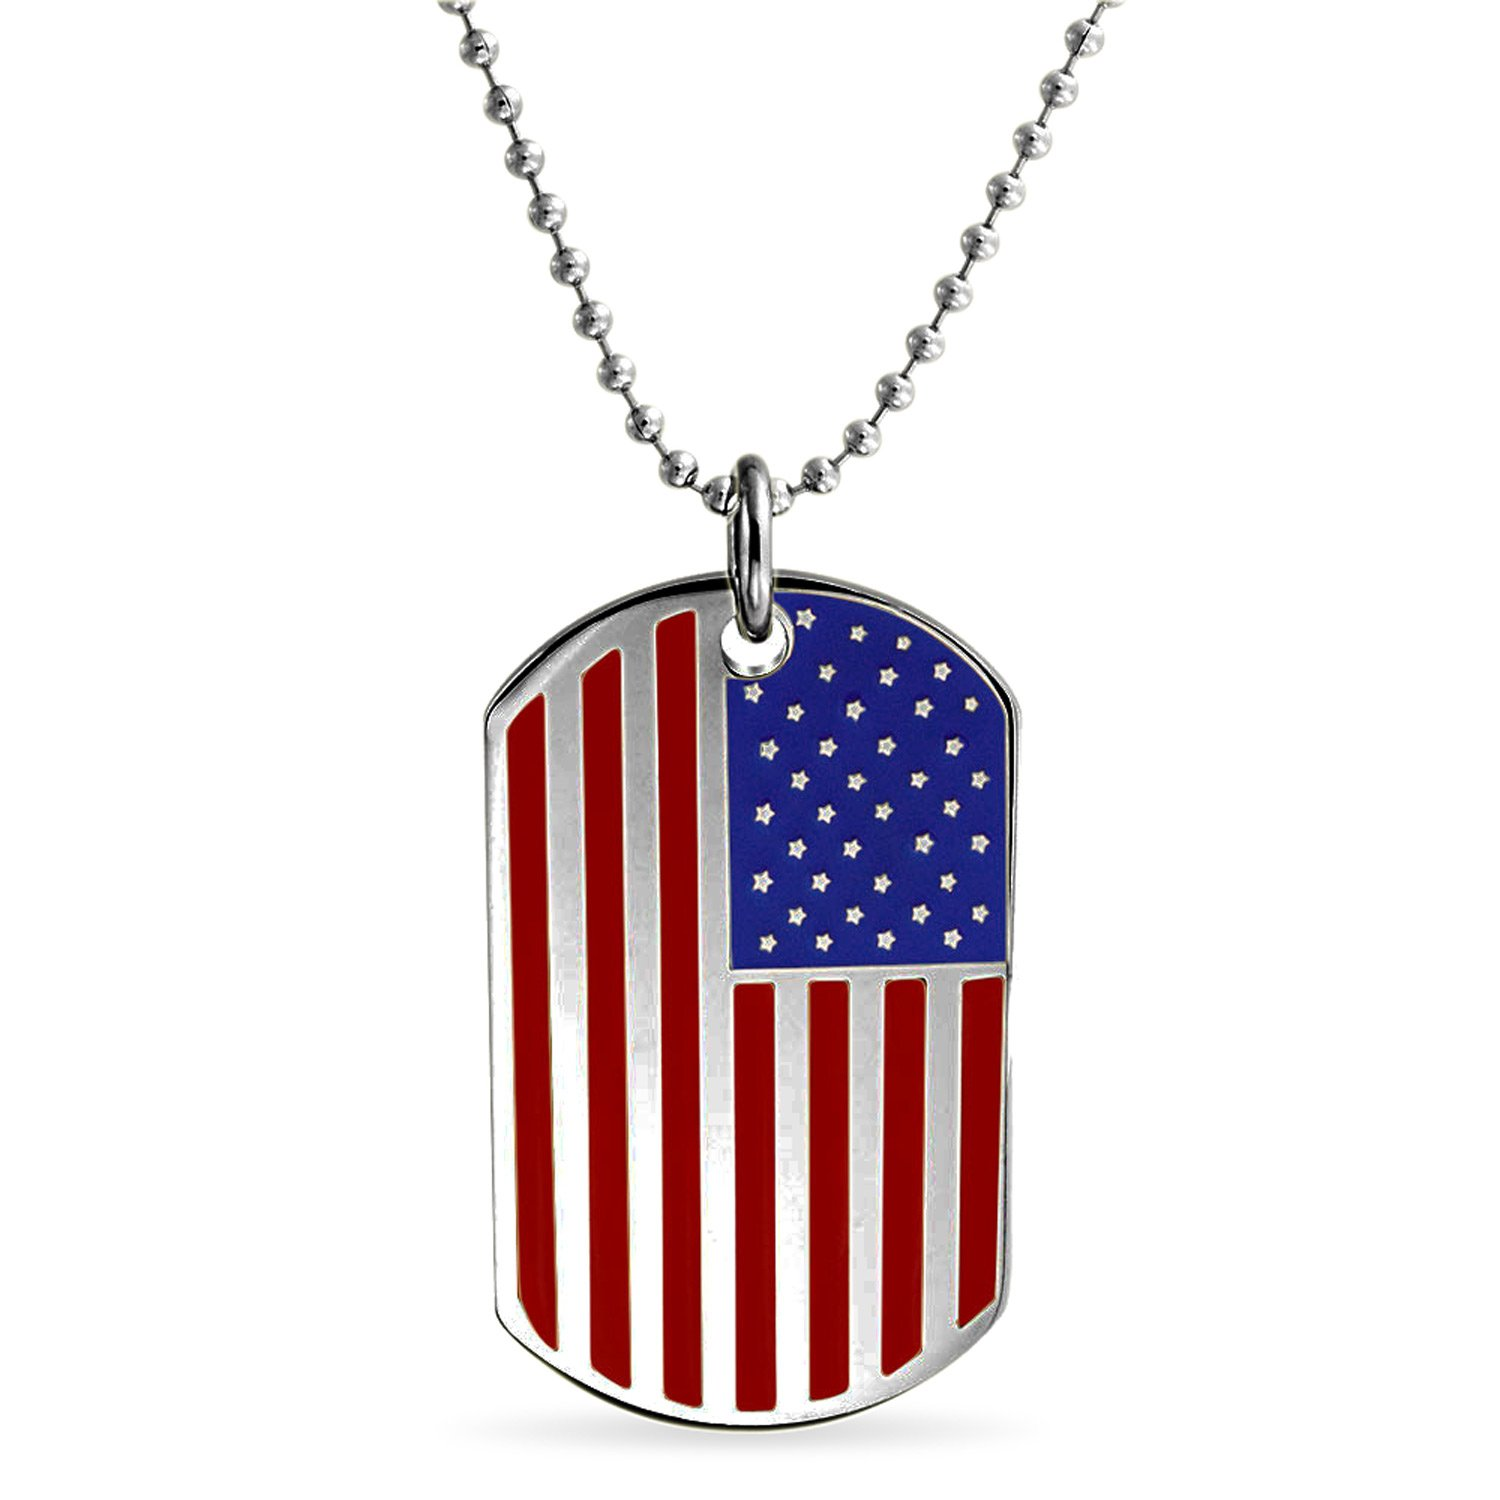 Bling Jewelry Patriotic USA Flag Dog Pendant Stainless Steel Necklace 19 Inches